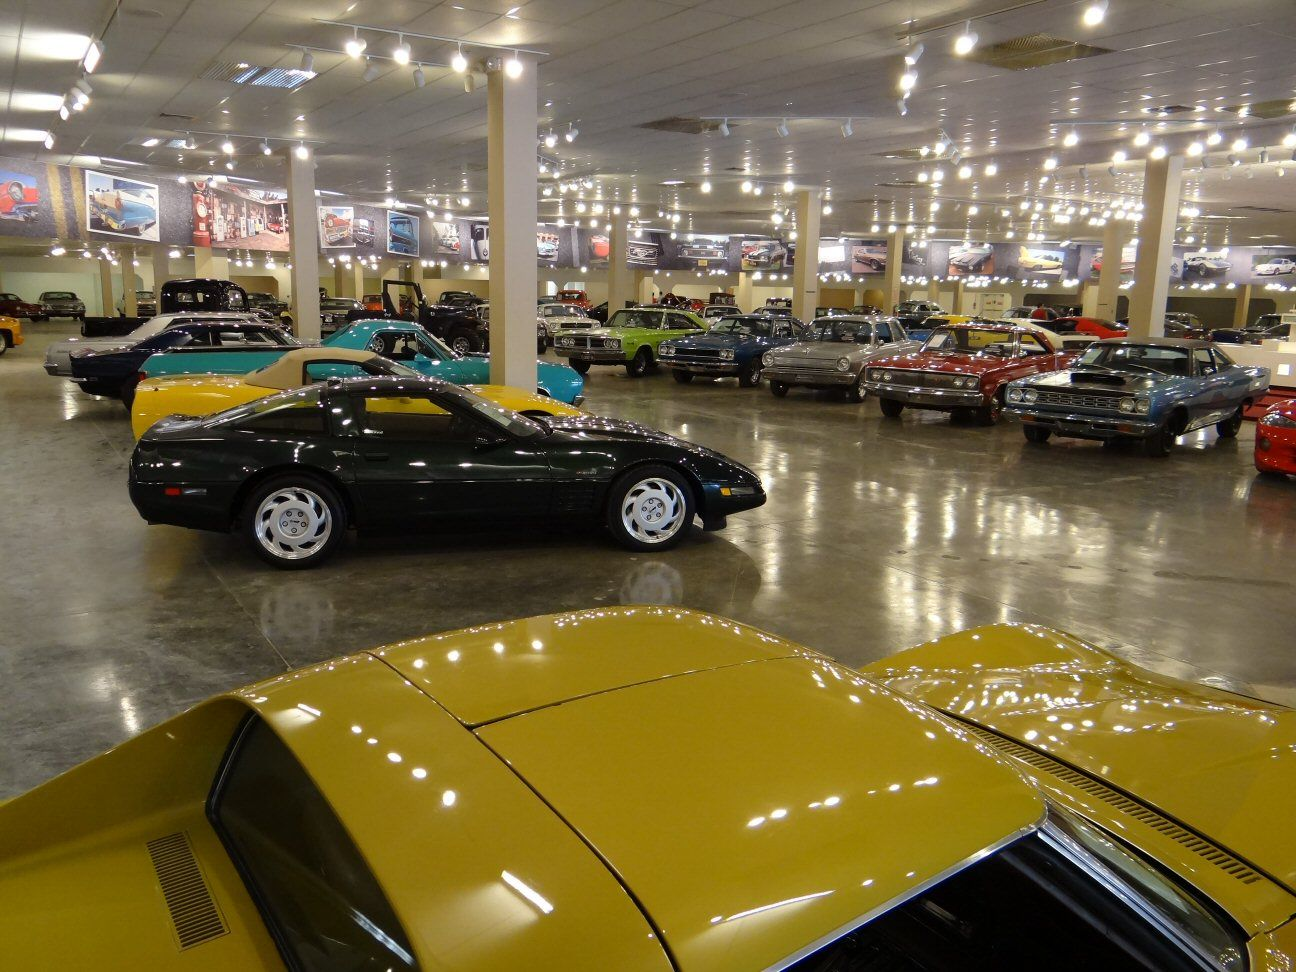 Gateway Classic Cars & Museum has cars to view and cars to ...